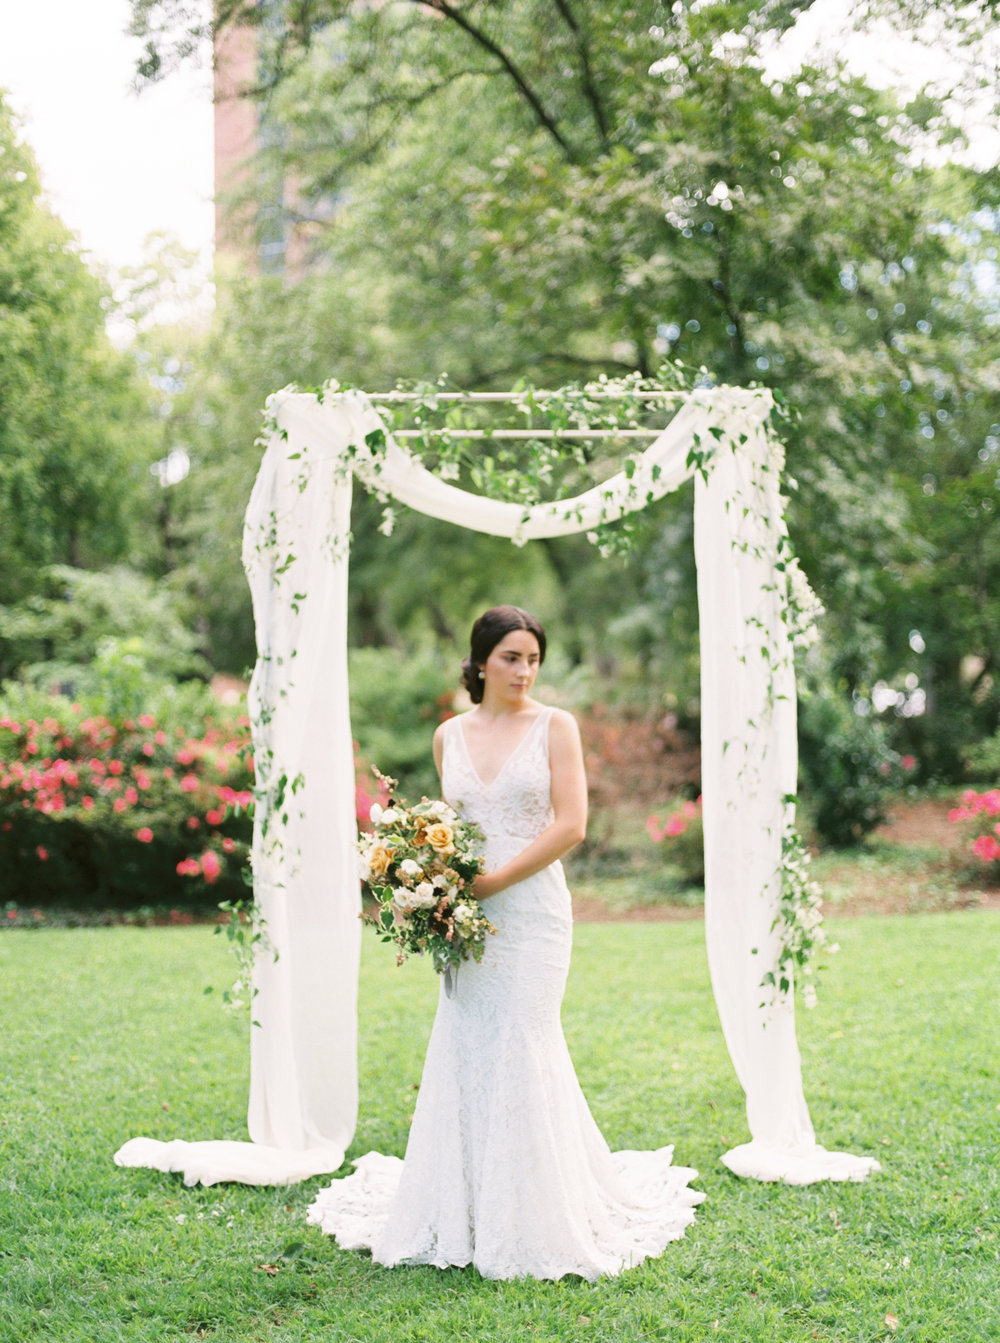 Callie Manion Photography_Garden Wedding Inspiration_132.jpg